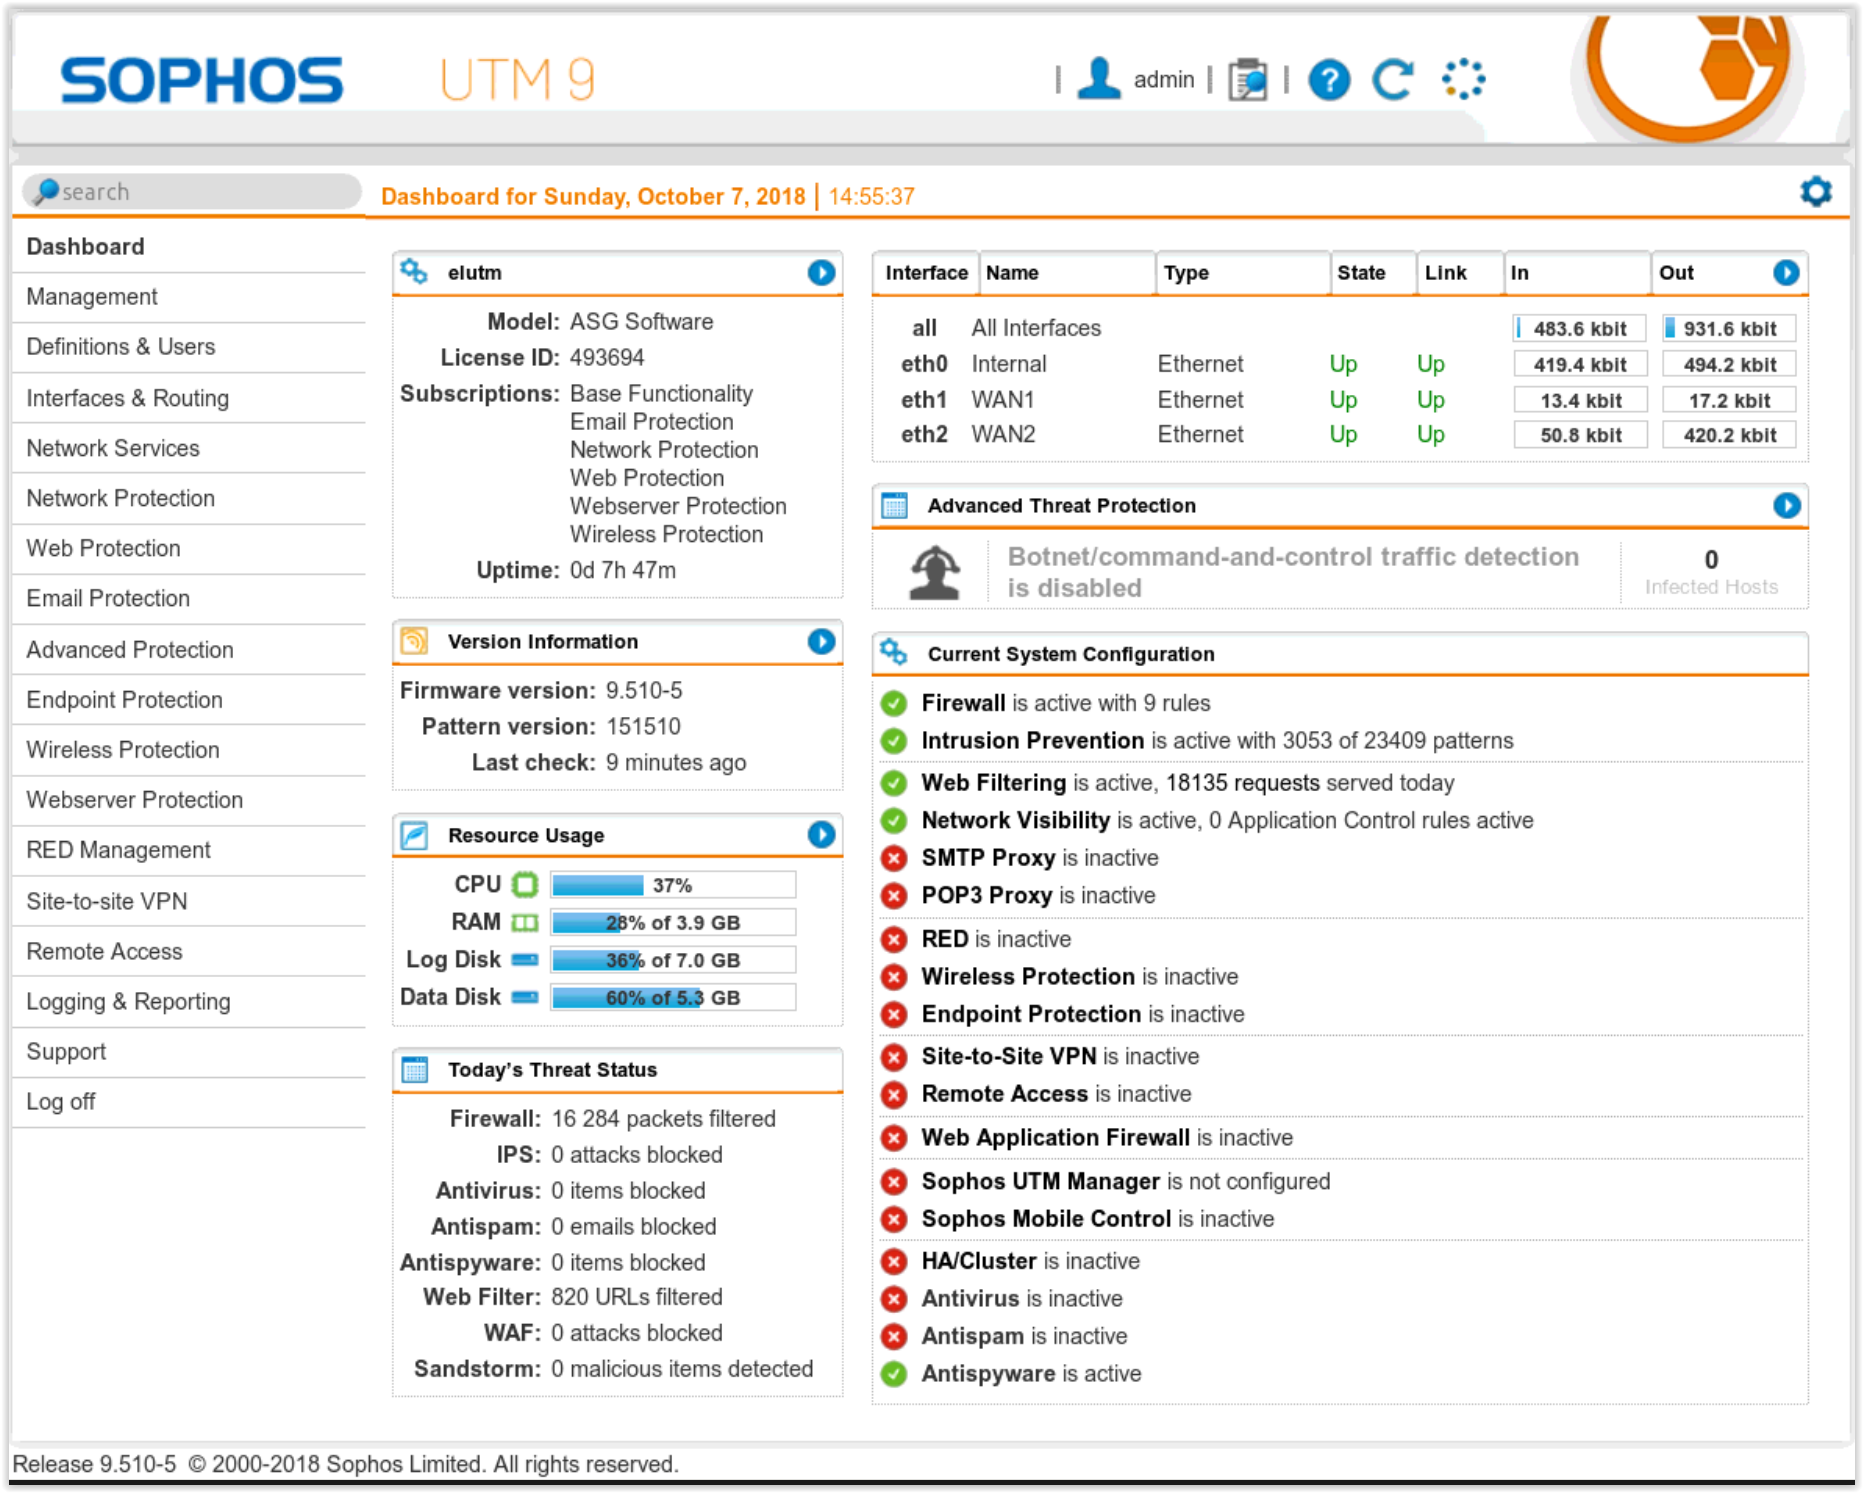 My Beautiful Home Network - Mo's Blog - Security & Stuff